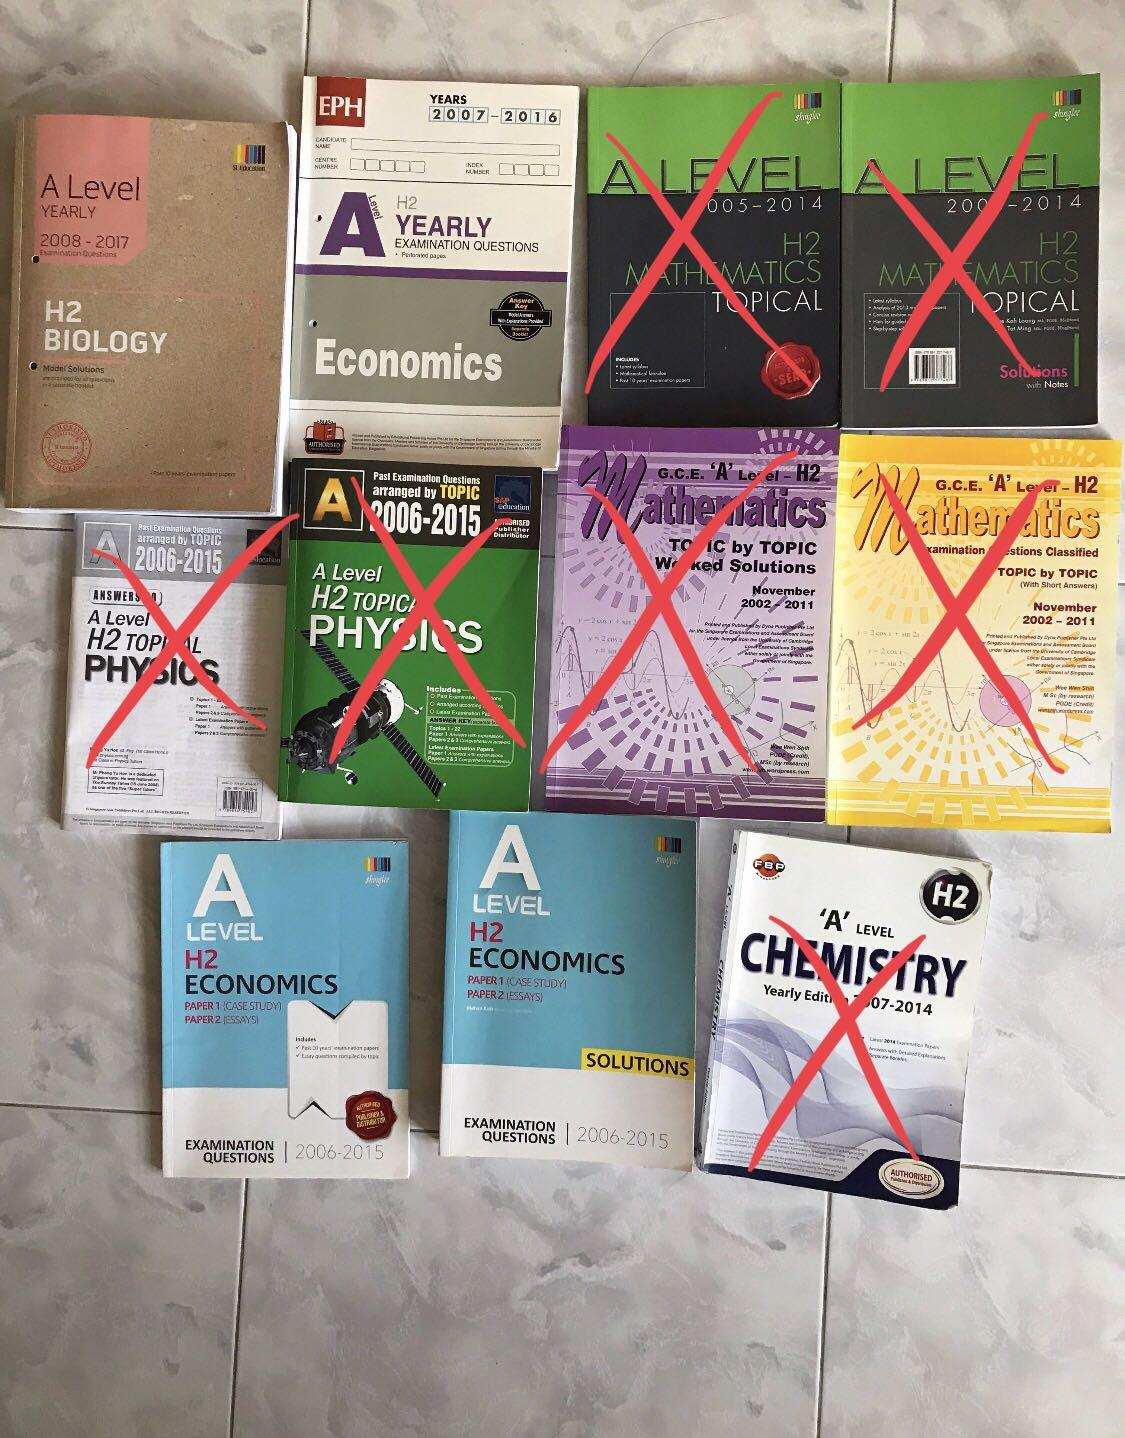 WTS- A level H2 Chemistry Topical & H2 Economics tys